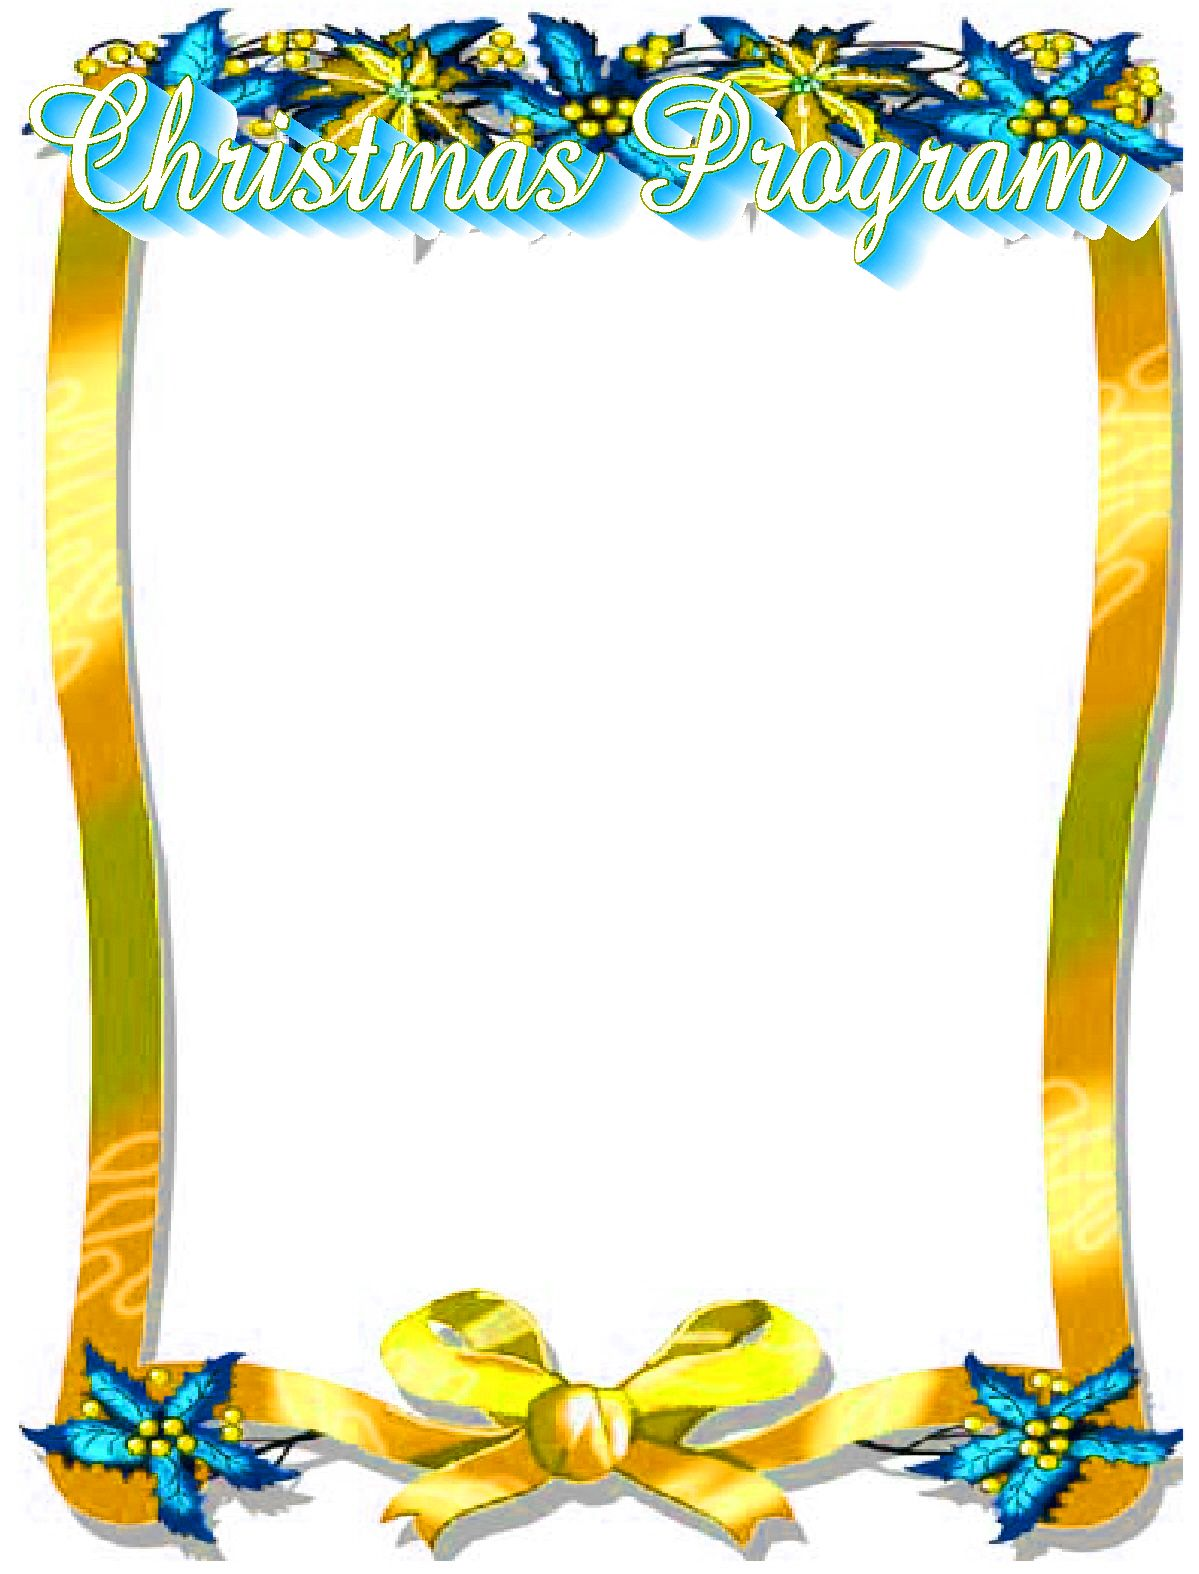 Religious Christmas Borders And Frames - 2018 images & pictures ...